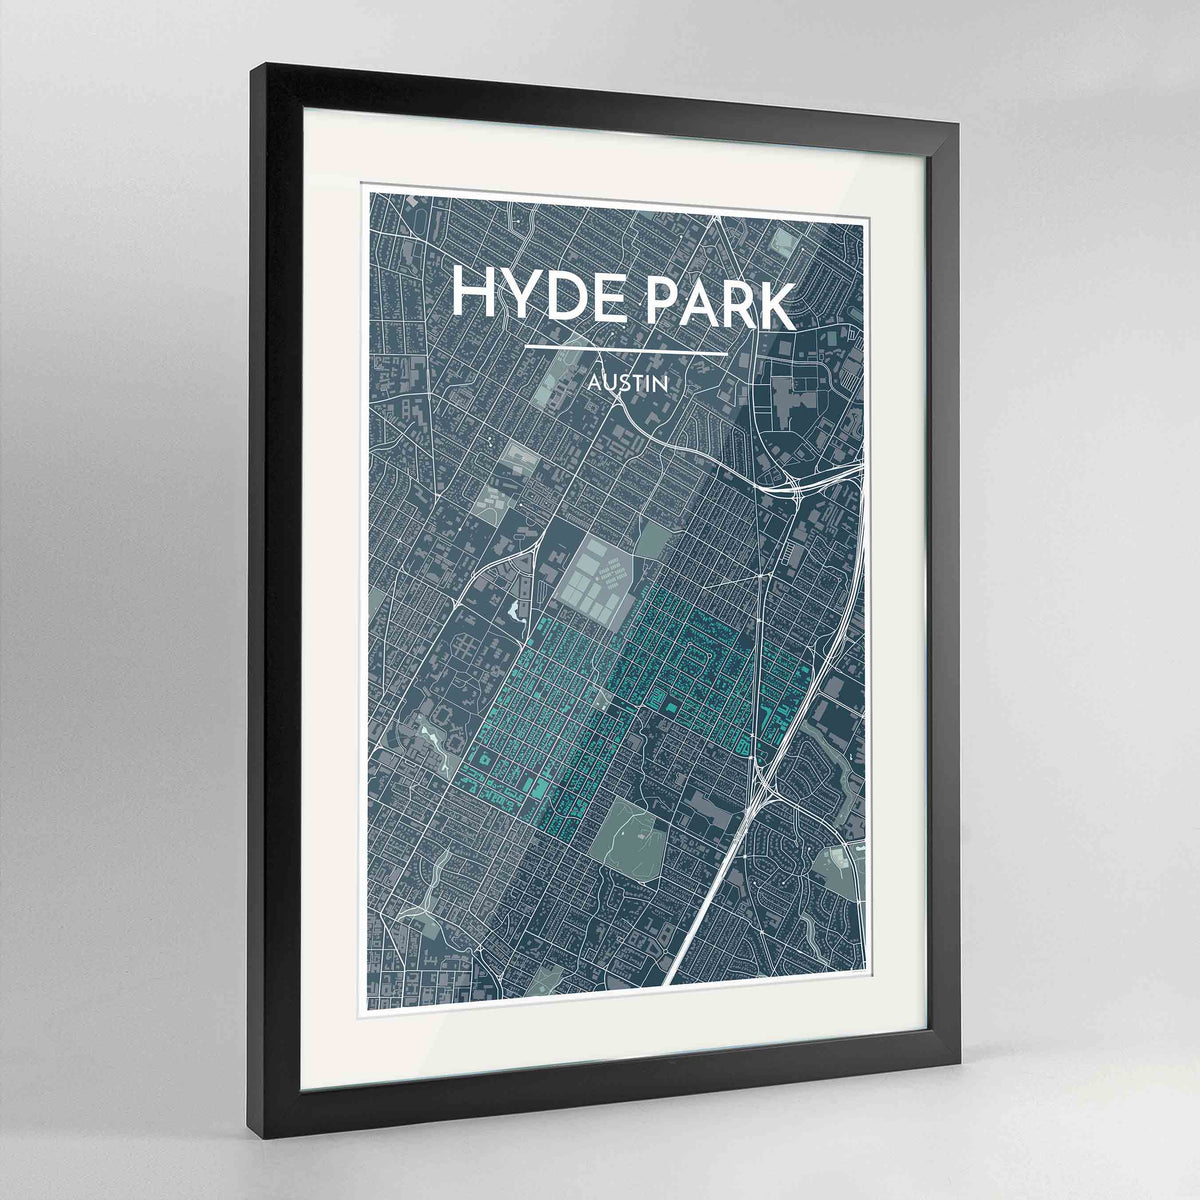 "Framed Hyde Park Neighbourhood of Austin Map Art Print 24x36"" Contemporary Black frame Point Two Design Group"